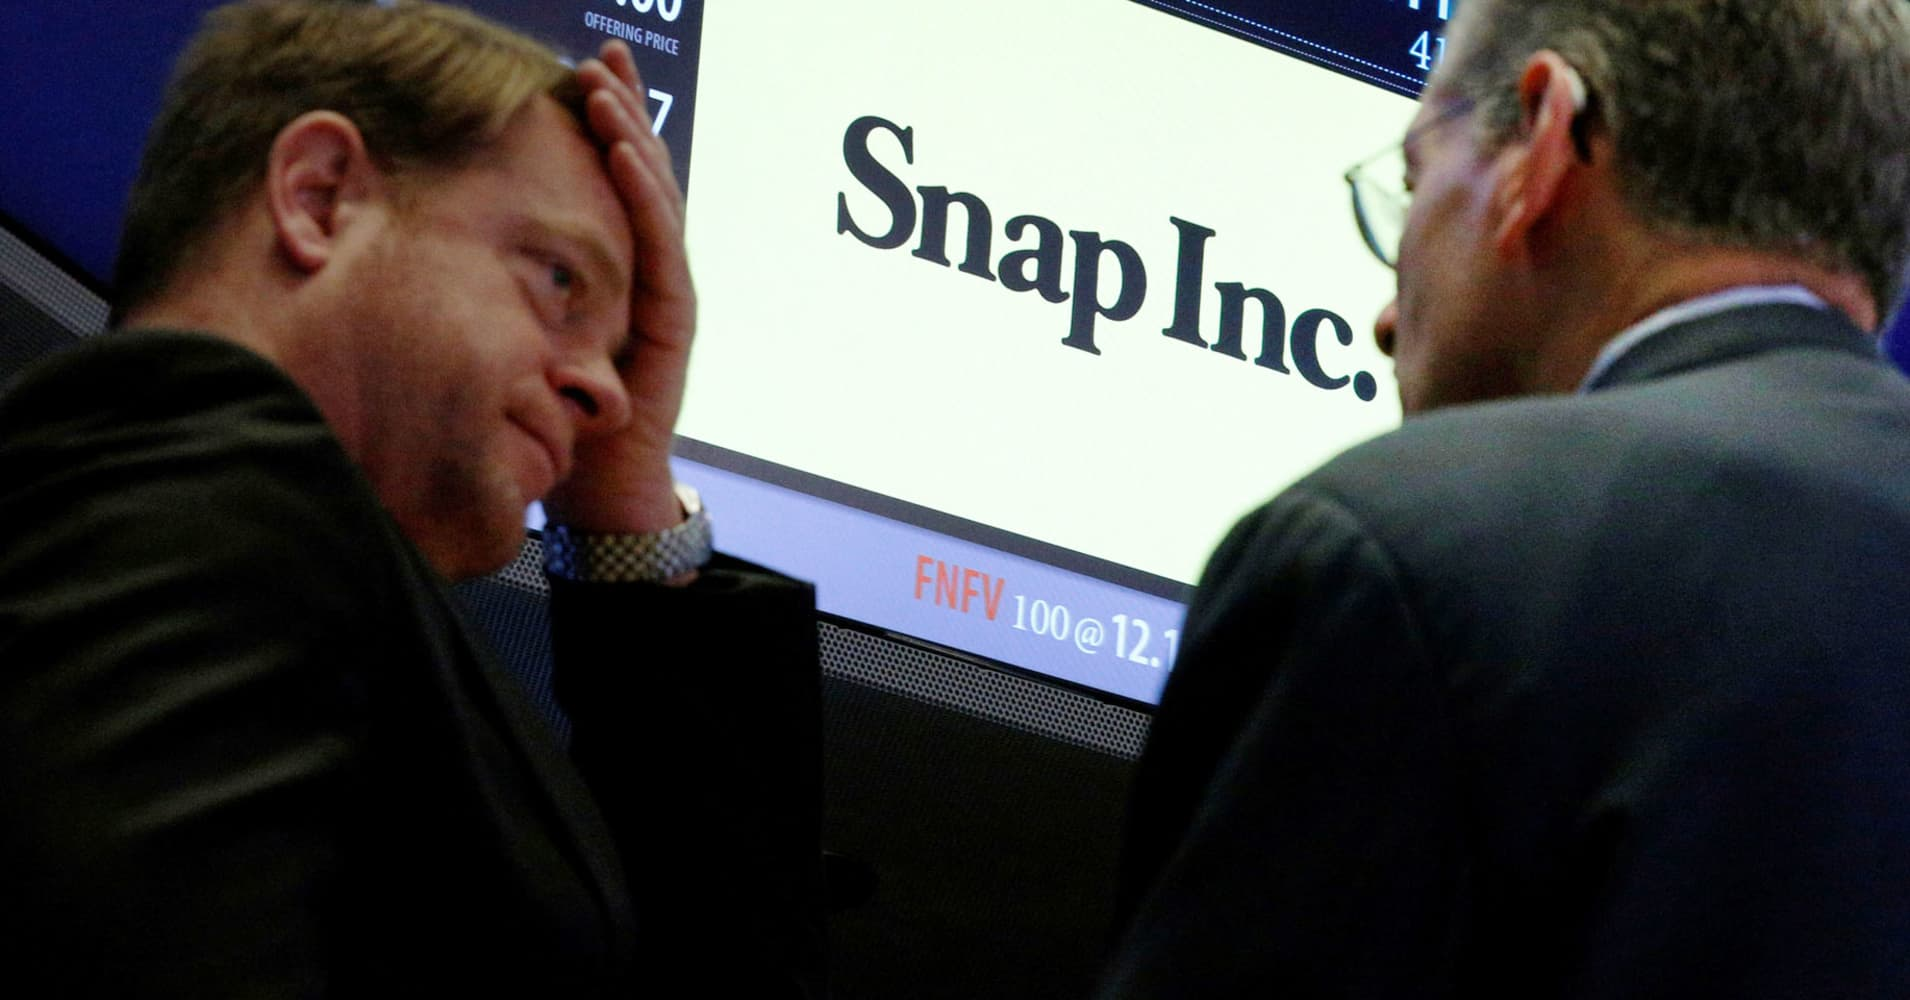 Snap craters 10% after BTIG's Greenfield cuts target to $5: 'We are tired of Snapchat's excuses'